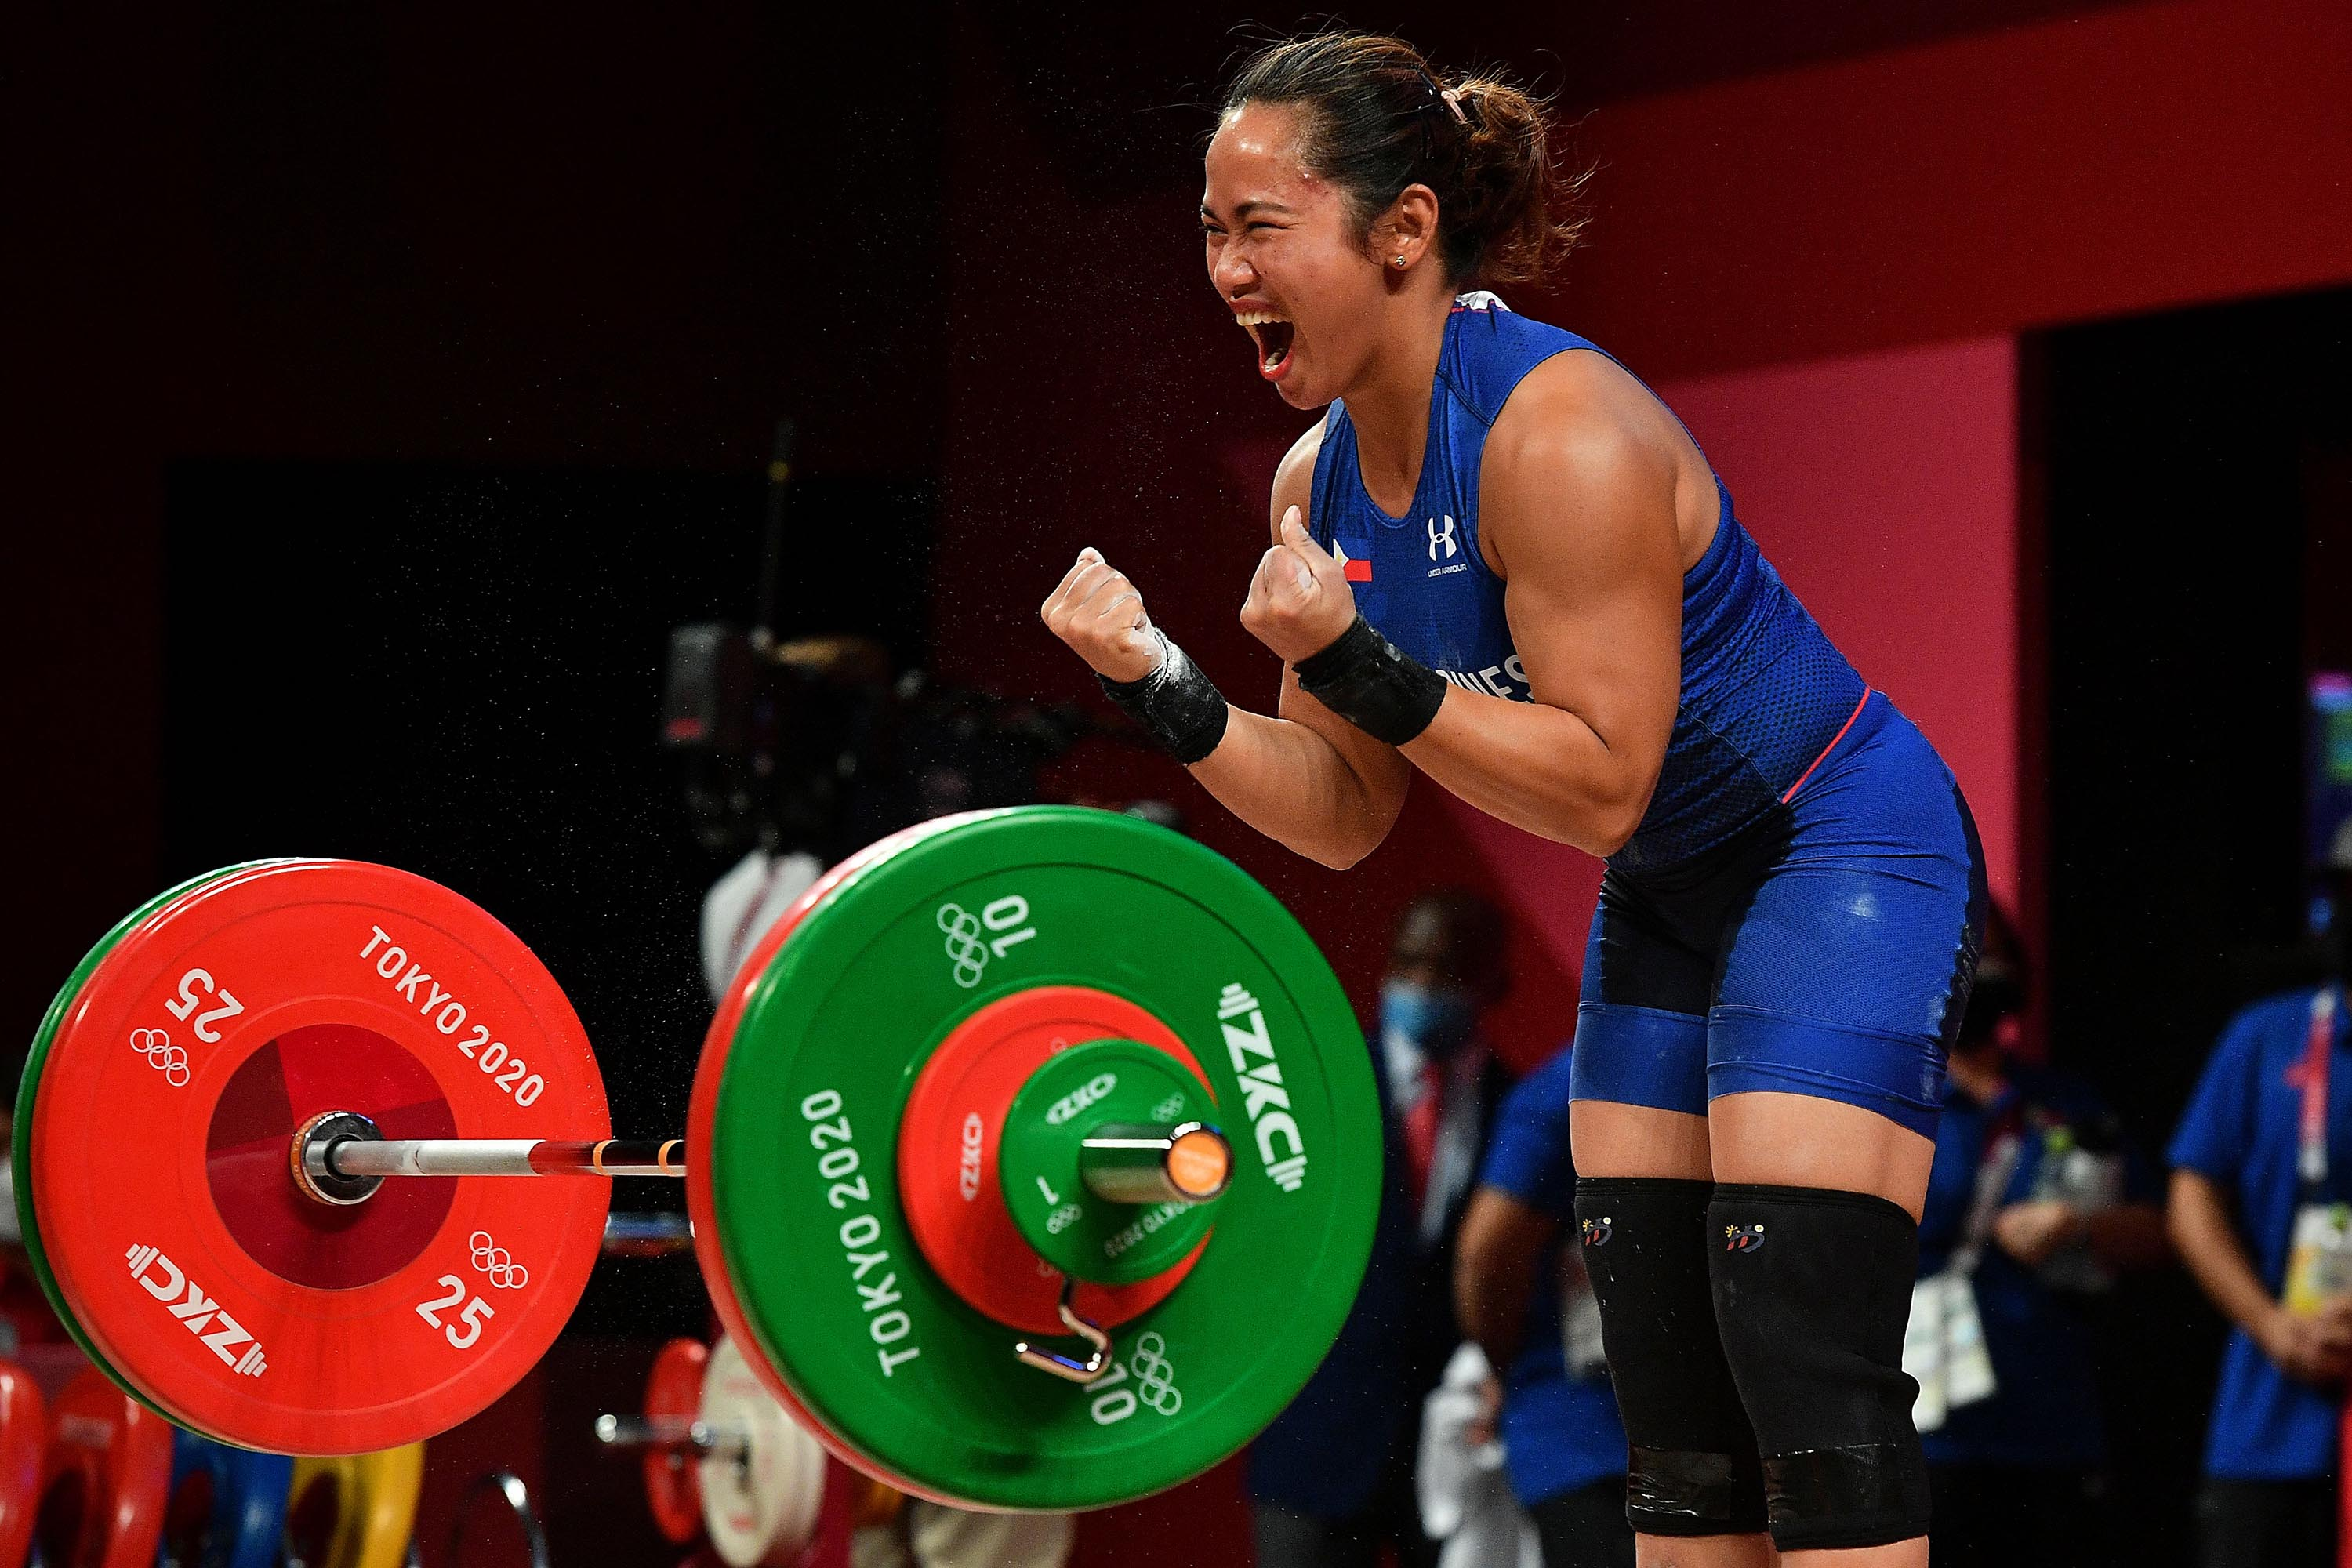 The Philippines' Hidilyn Diaz reacts after winning Olympic gold in the 55-kilogram weightlifting competition on Monday, July 26.